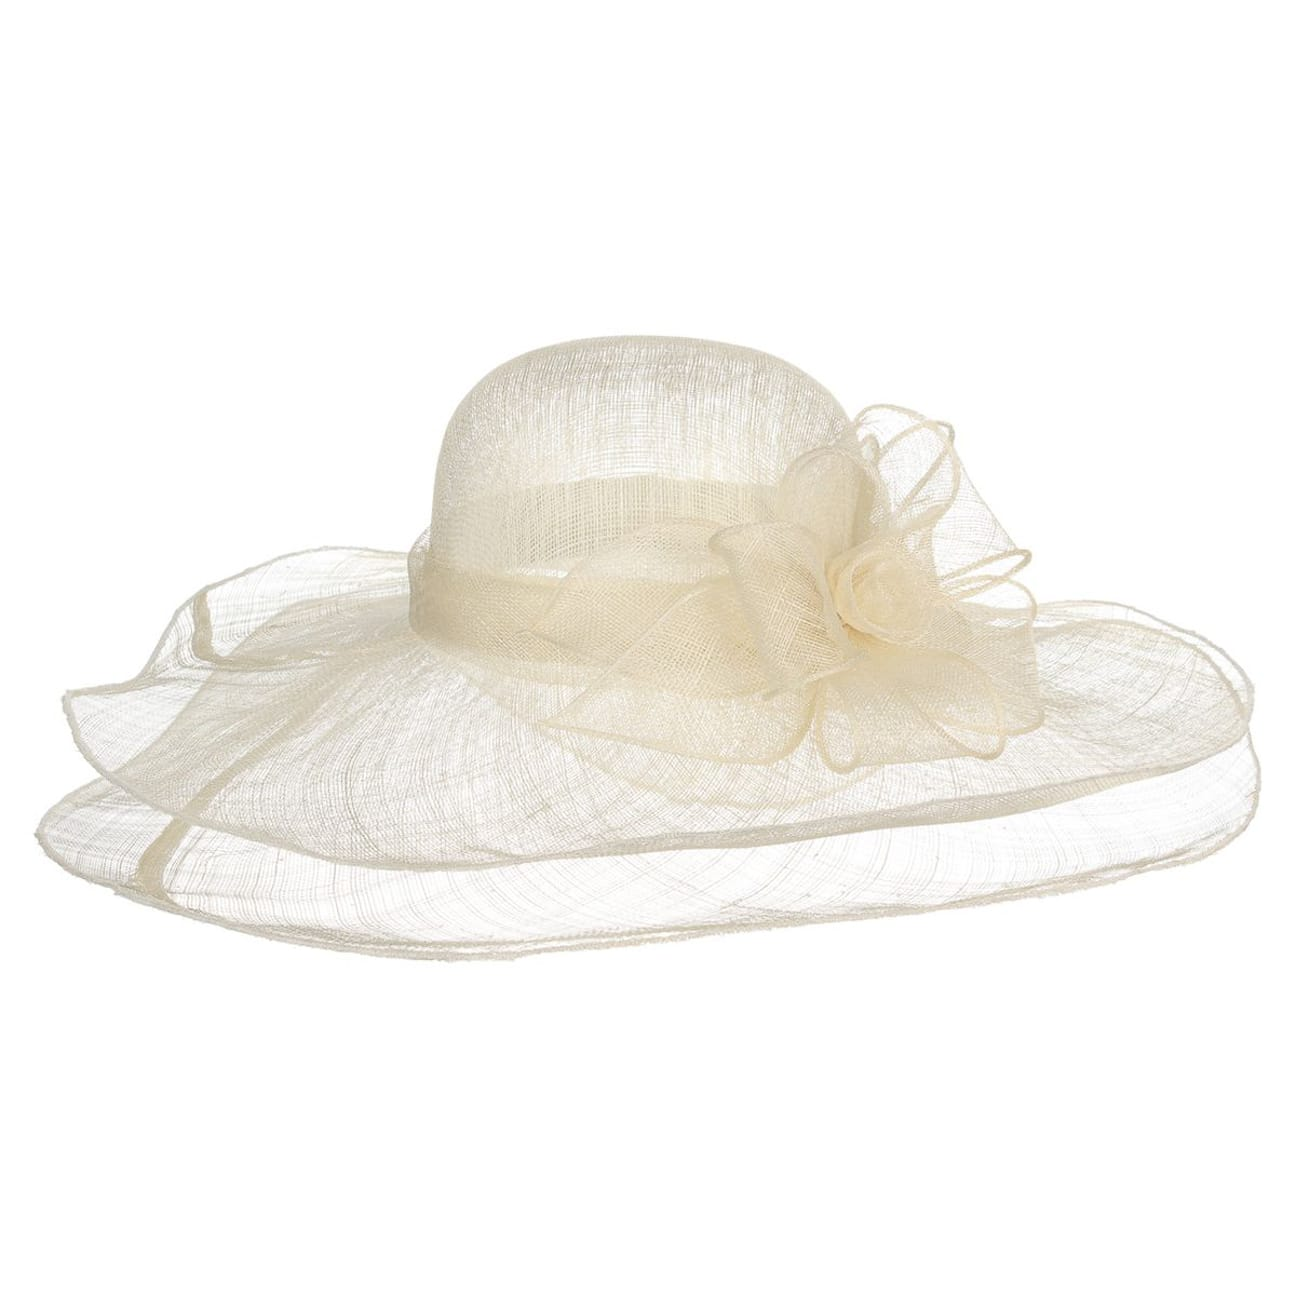 Marit Occasion Hat By McBURN, GBP 67,95 --> Hats, Caps